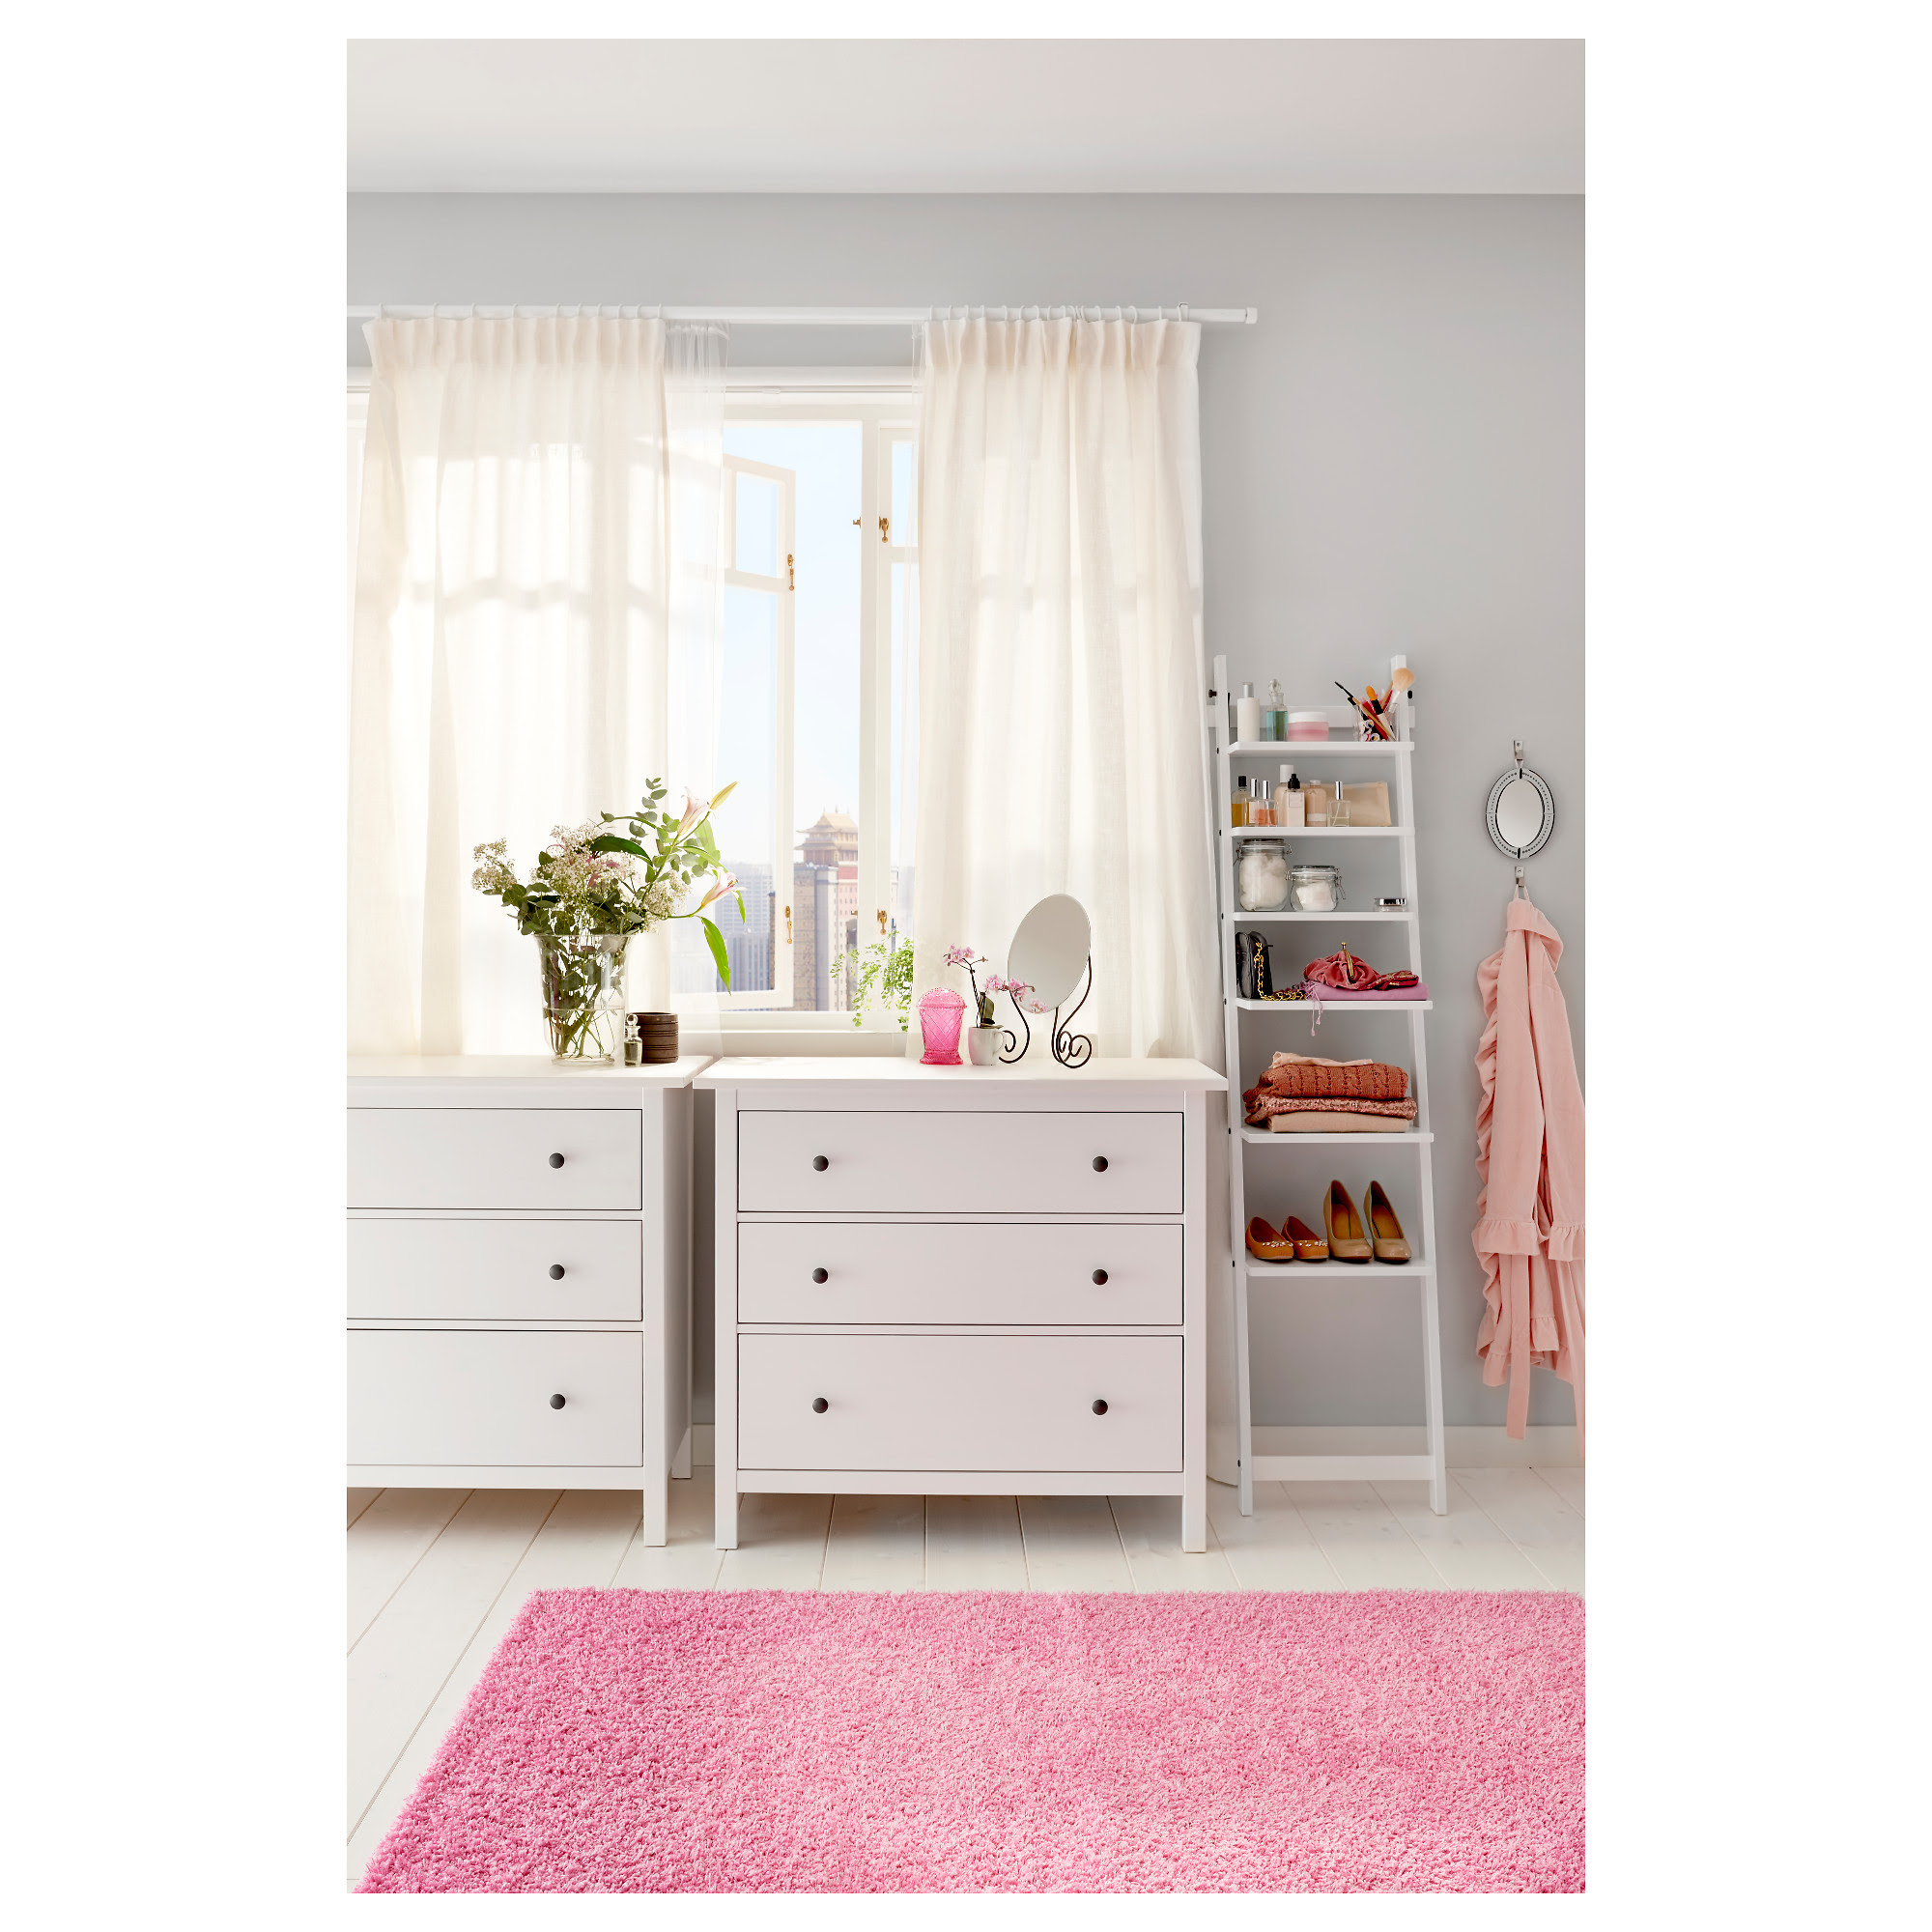 Ikea Mandal mode Ikea Brimnes Series Chests Drawers All